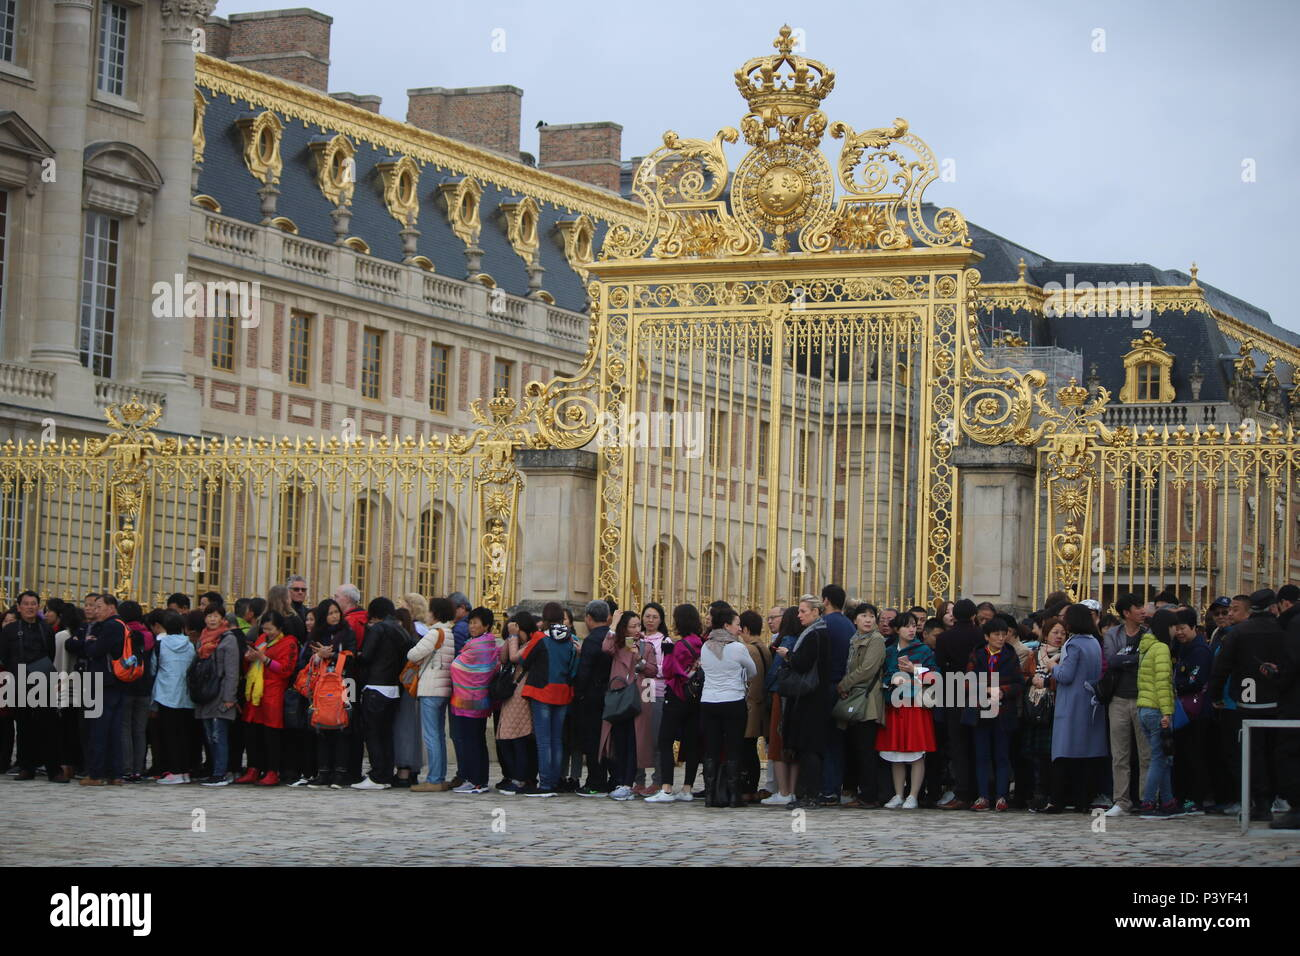 Too many tourists - large queue of tourists in front of golden gates of Versailles - Stock Image